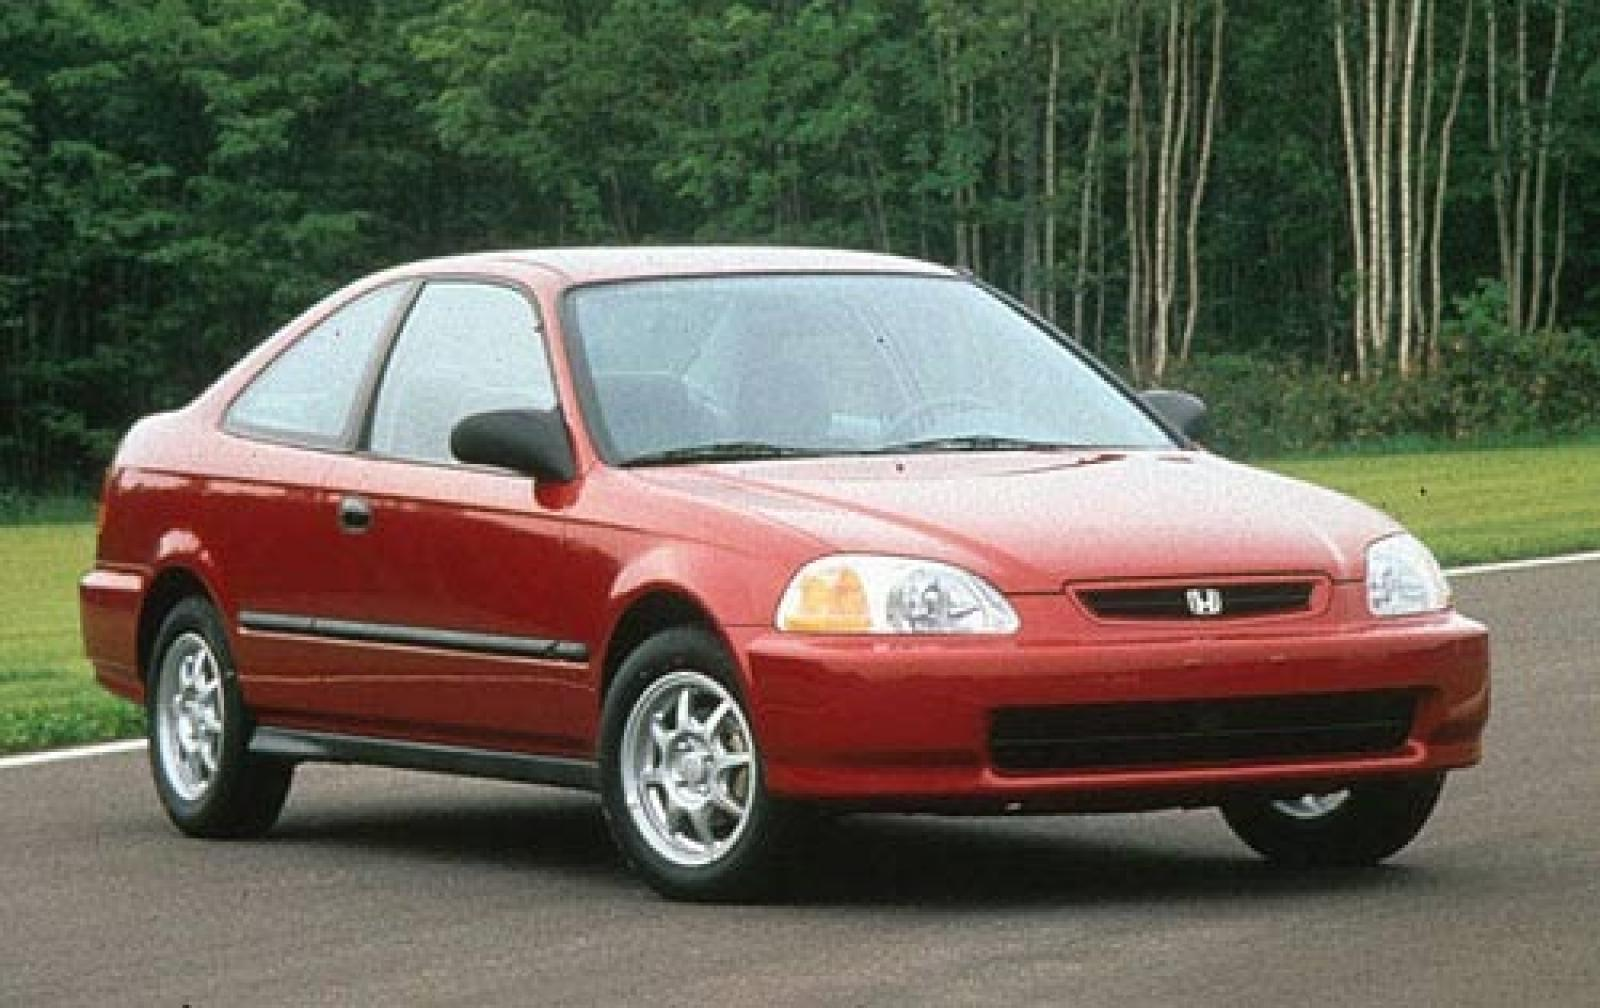 1998 Honda Civic #1 800 1024 1280 1600 Origin